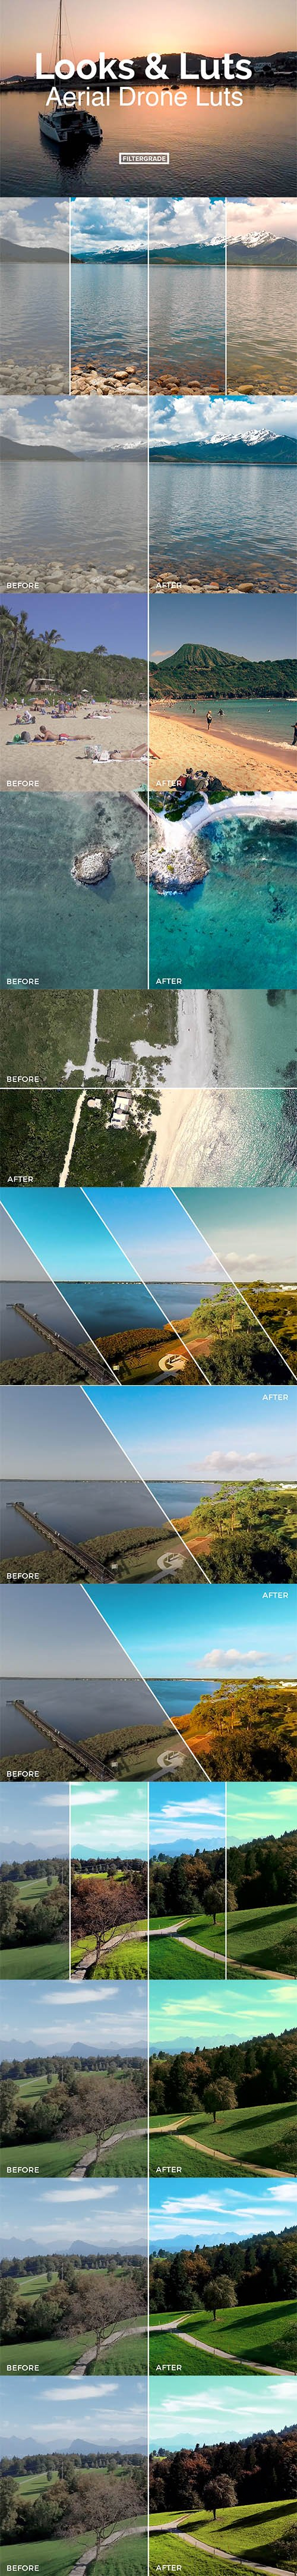 Looks and LUTs Aerial Drone LUTs